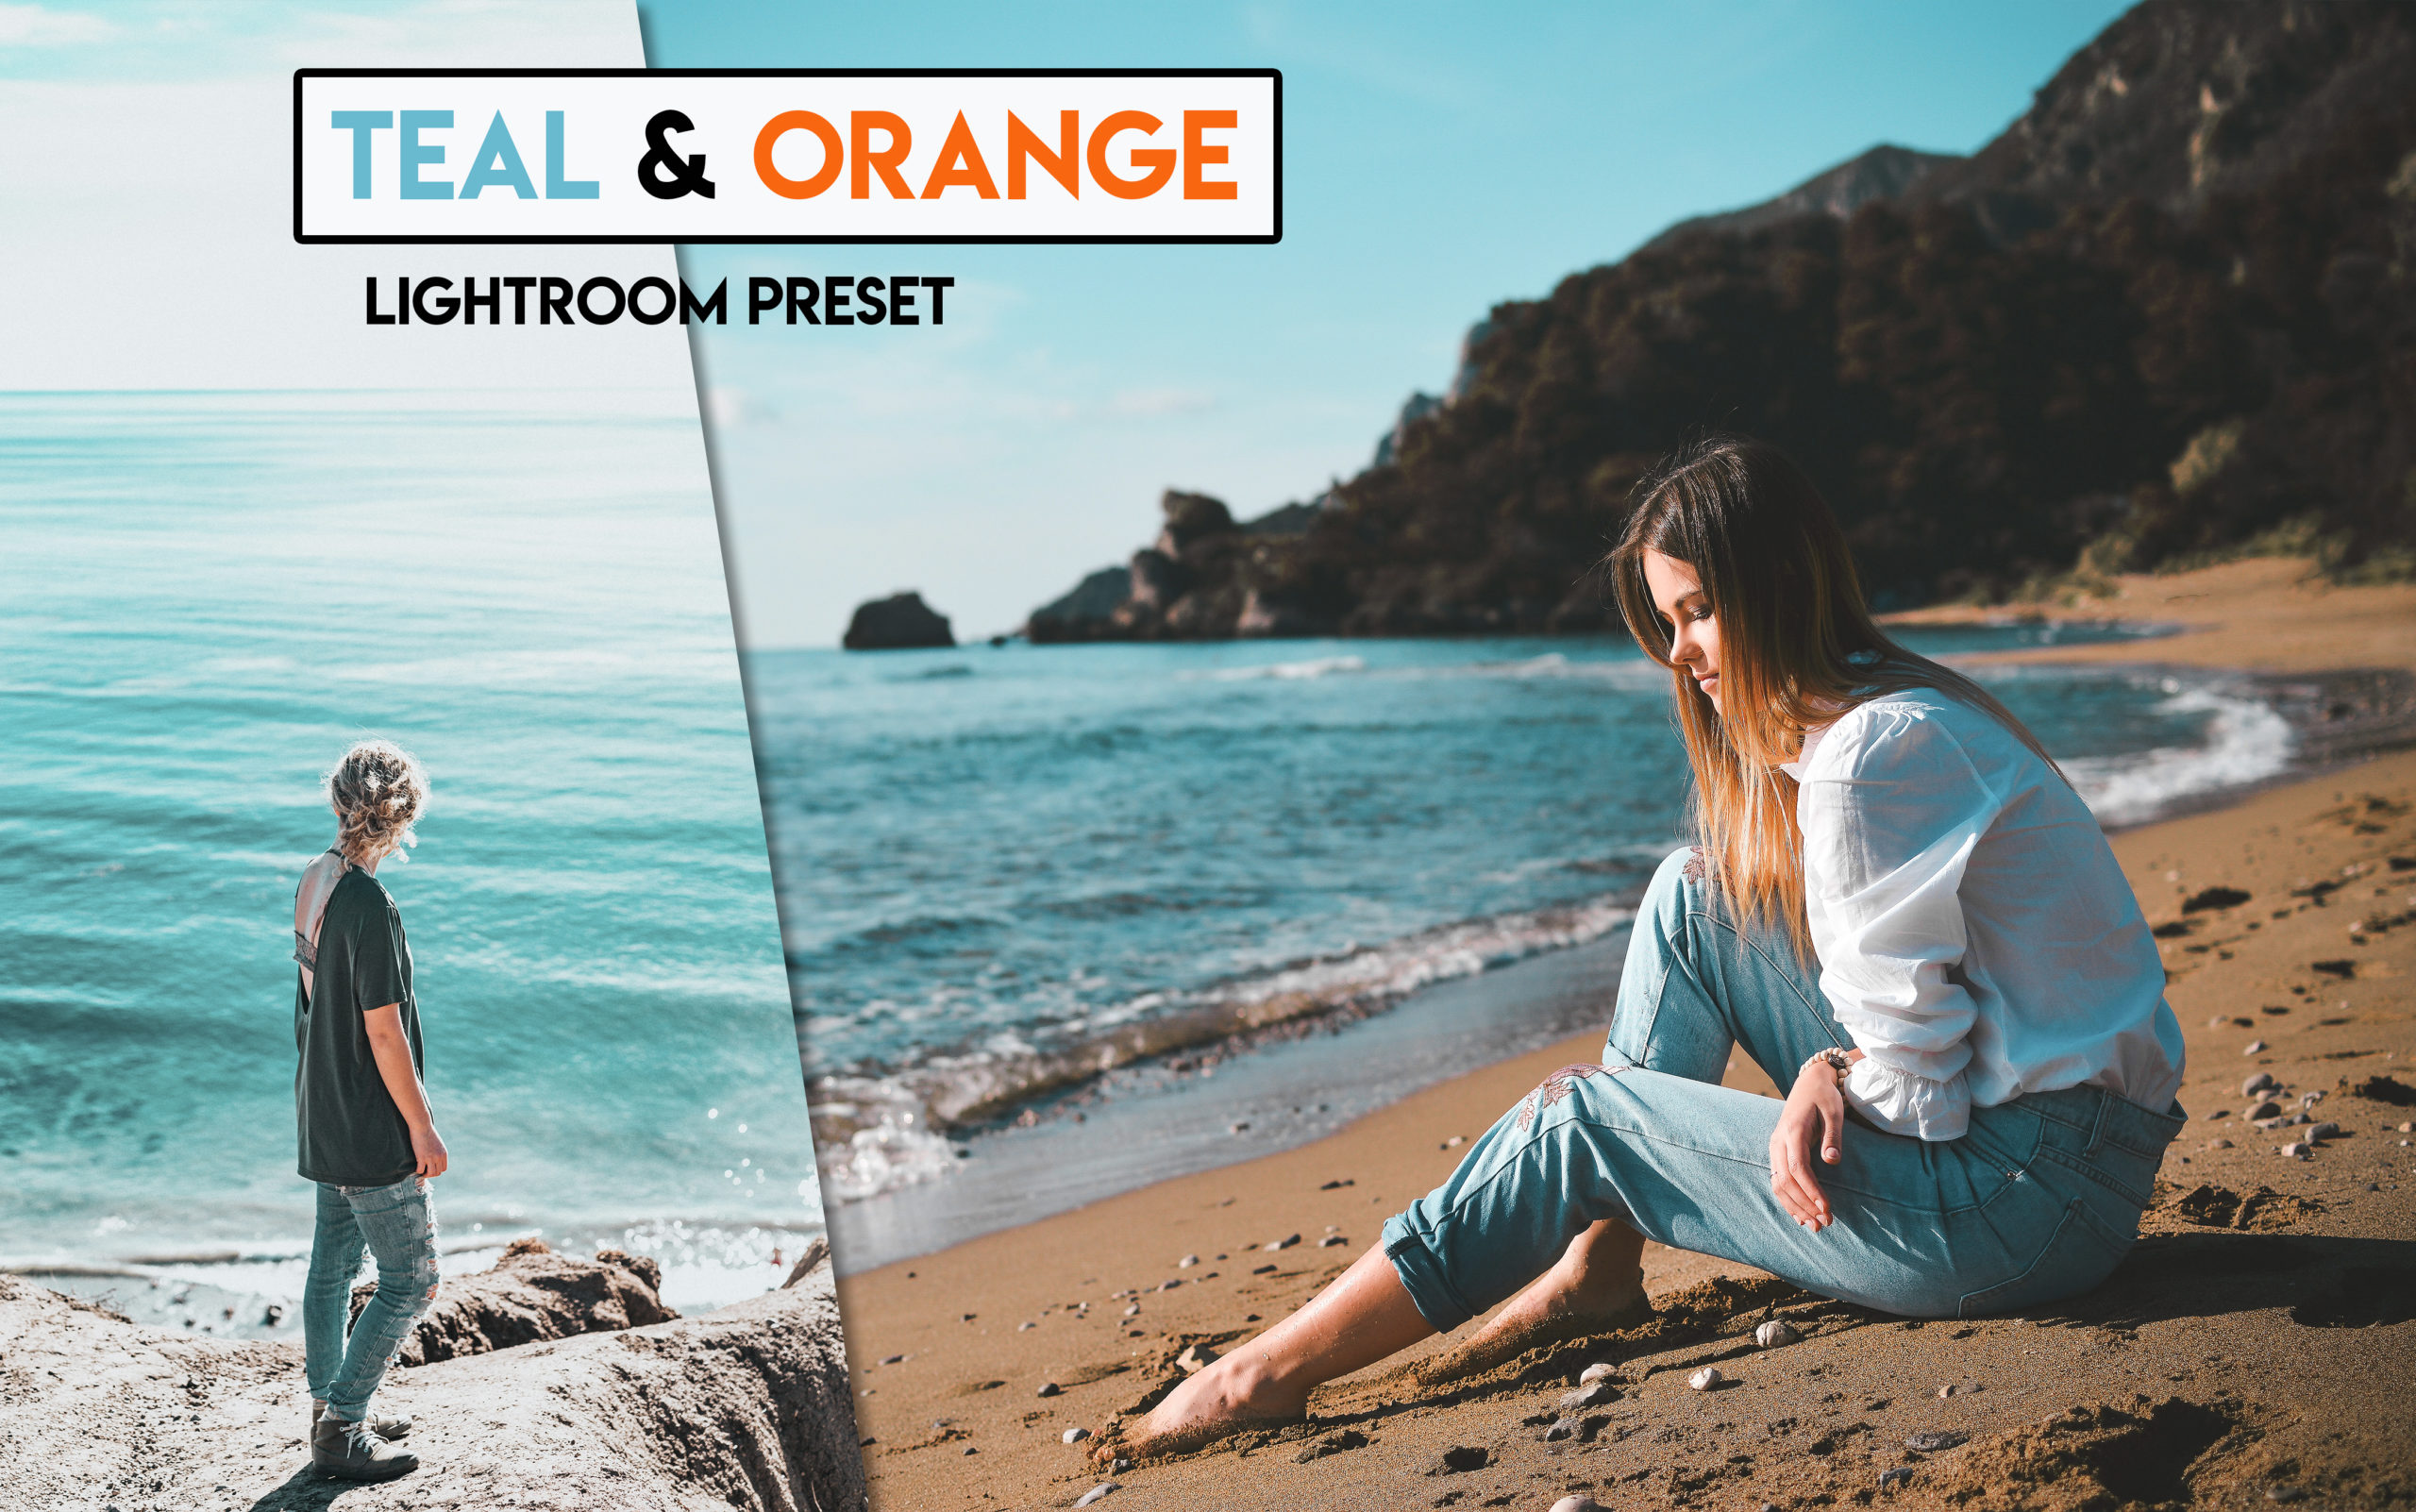 Teal & Orange Tone Lightroom Presets for Free | How to Make Teal & Orange Tone to Photos in Lightroom